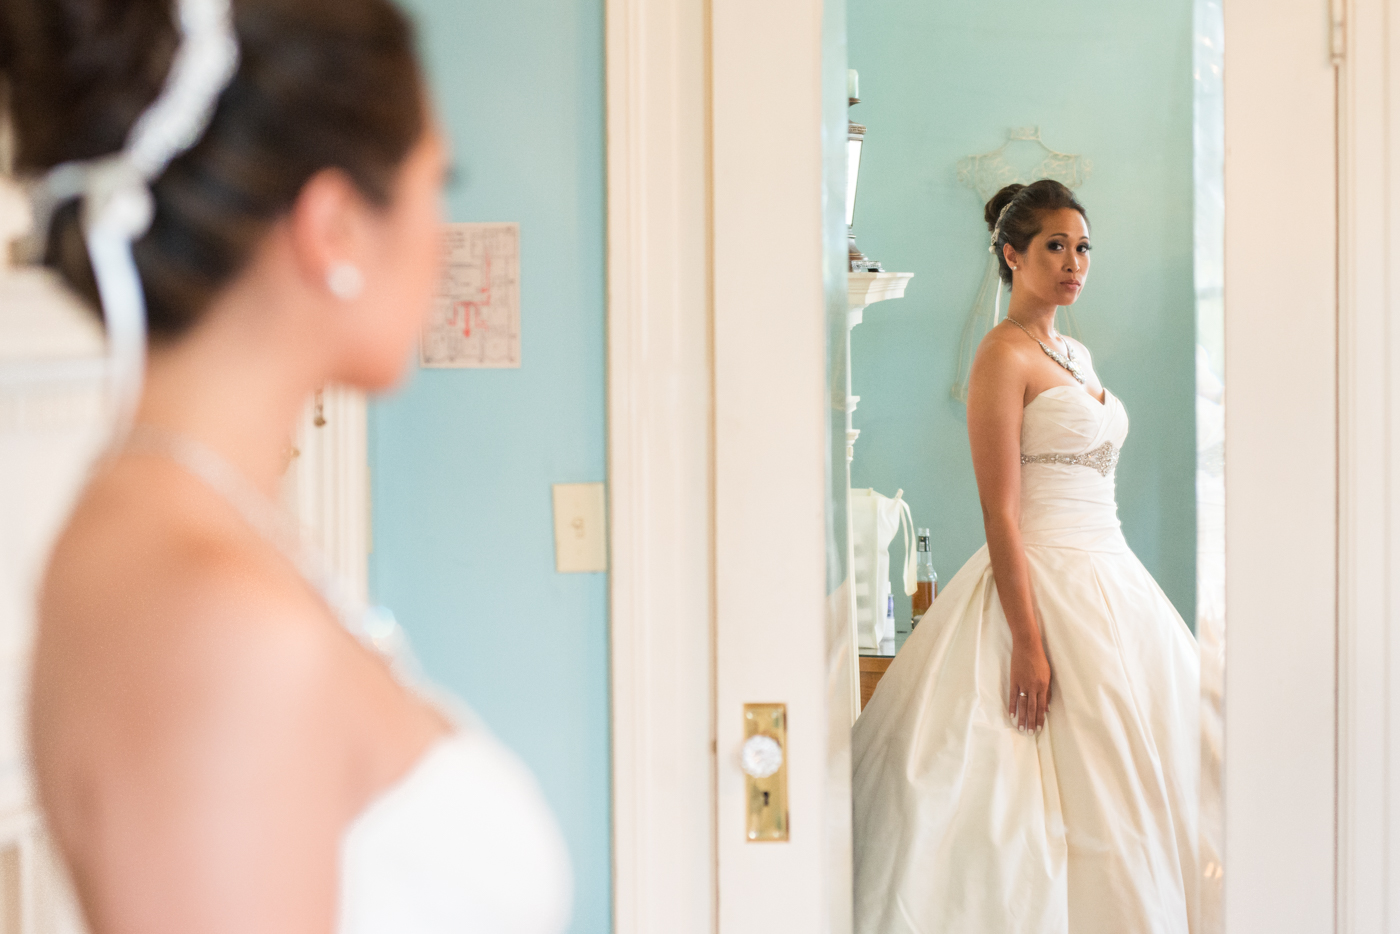 wedding-photo-westchester-new-york-njohnston-photography-21.jpg